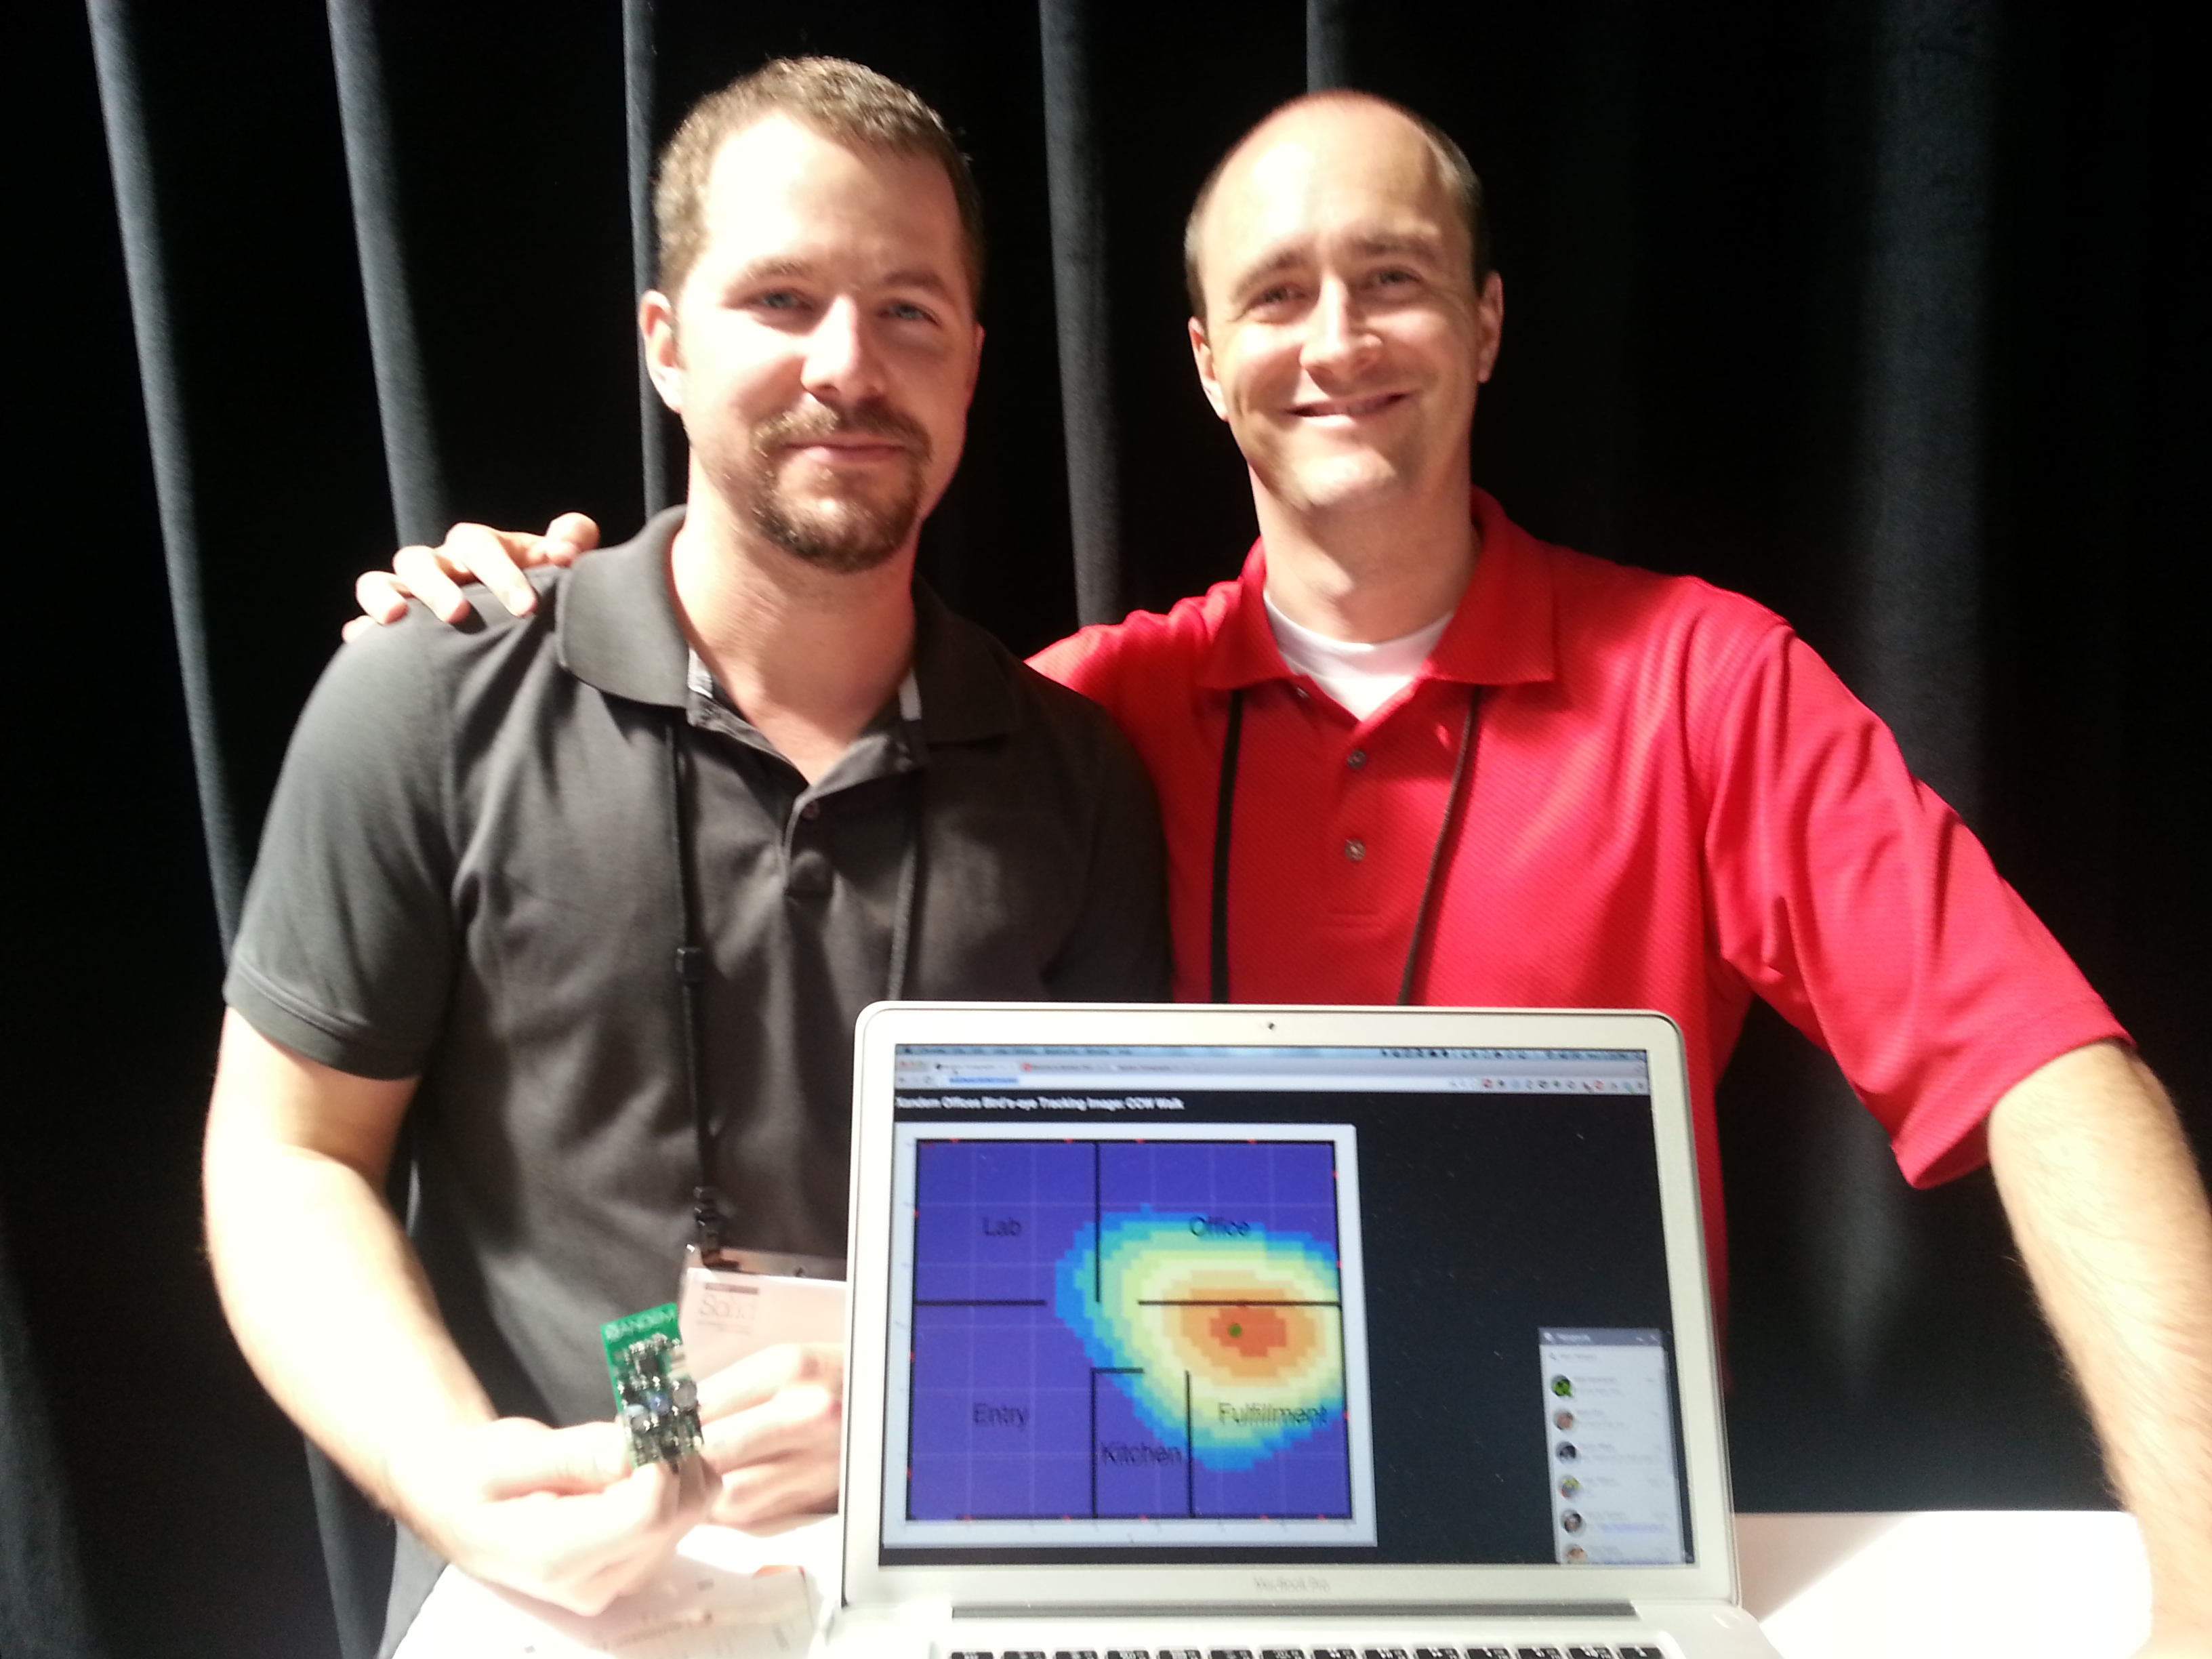 Xandem's CTO Dustin Maas (left) and CEO Joey Wilson (right) showing of their sensing technology.